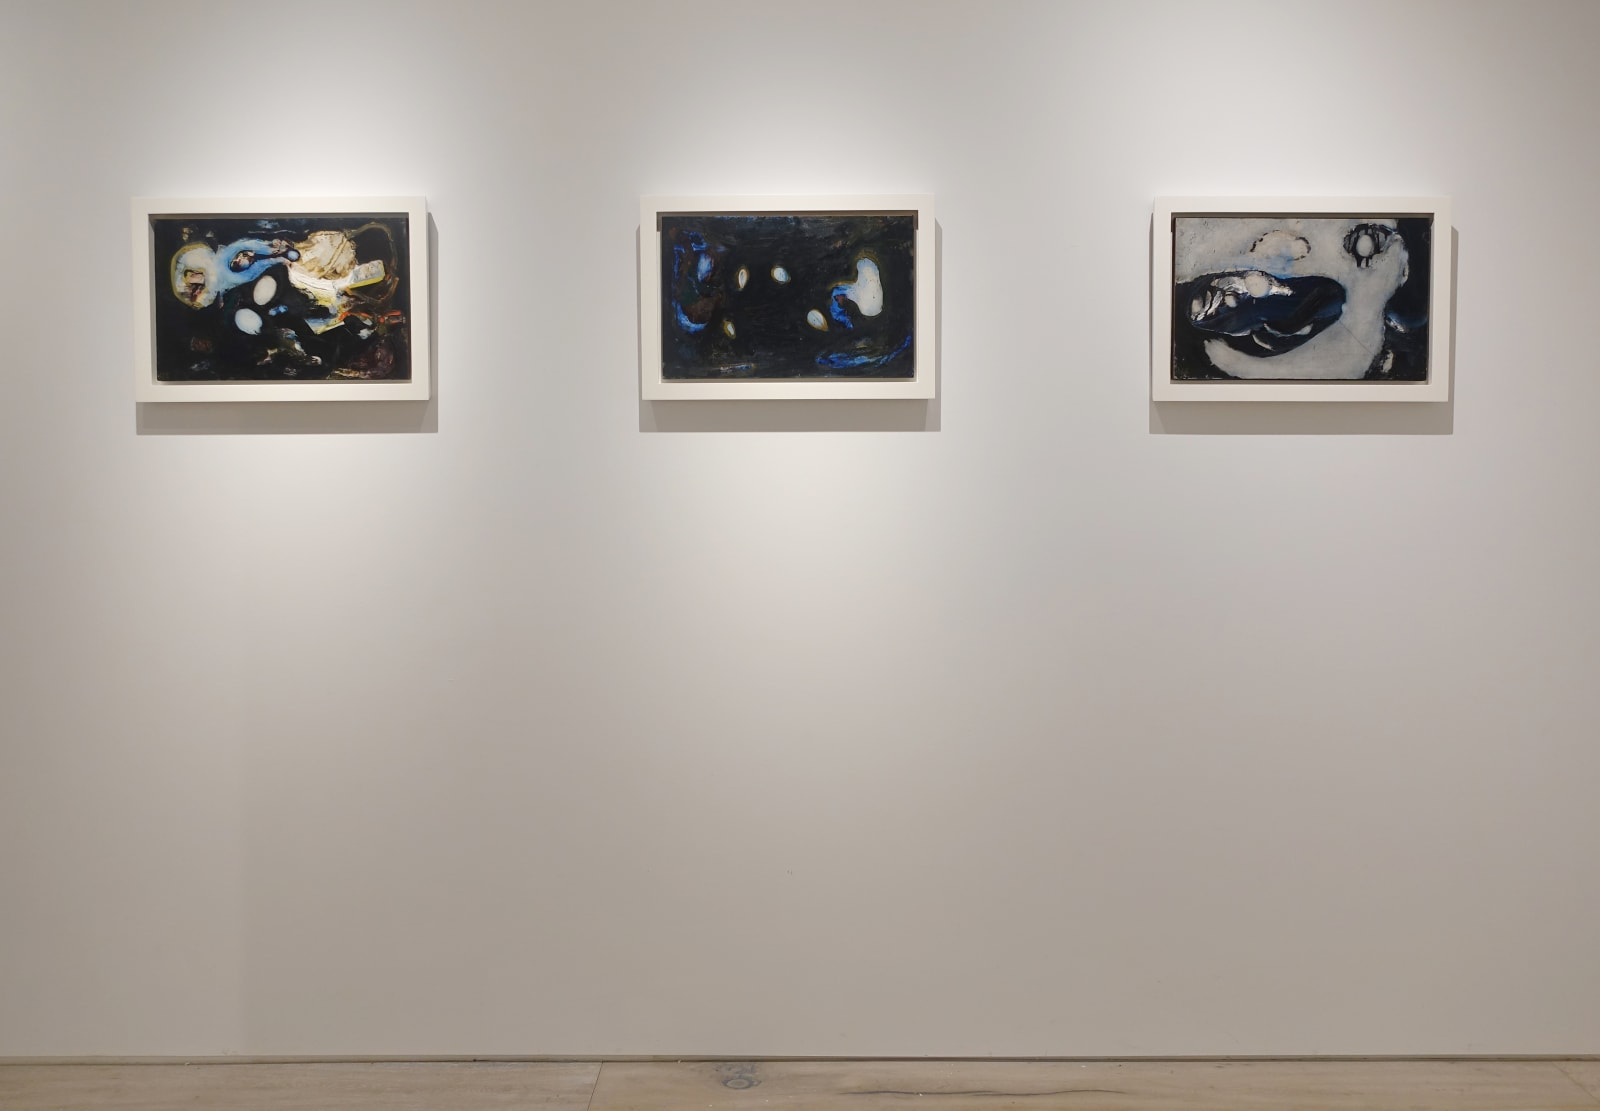 Installation view: Primordial Language: Small Works by William Scharf